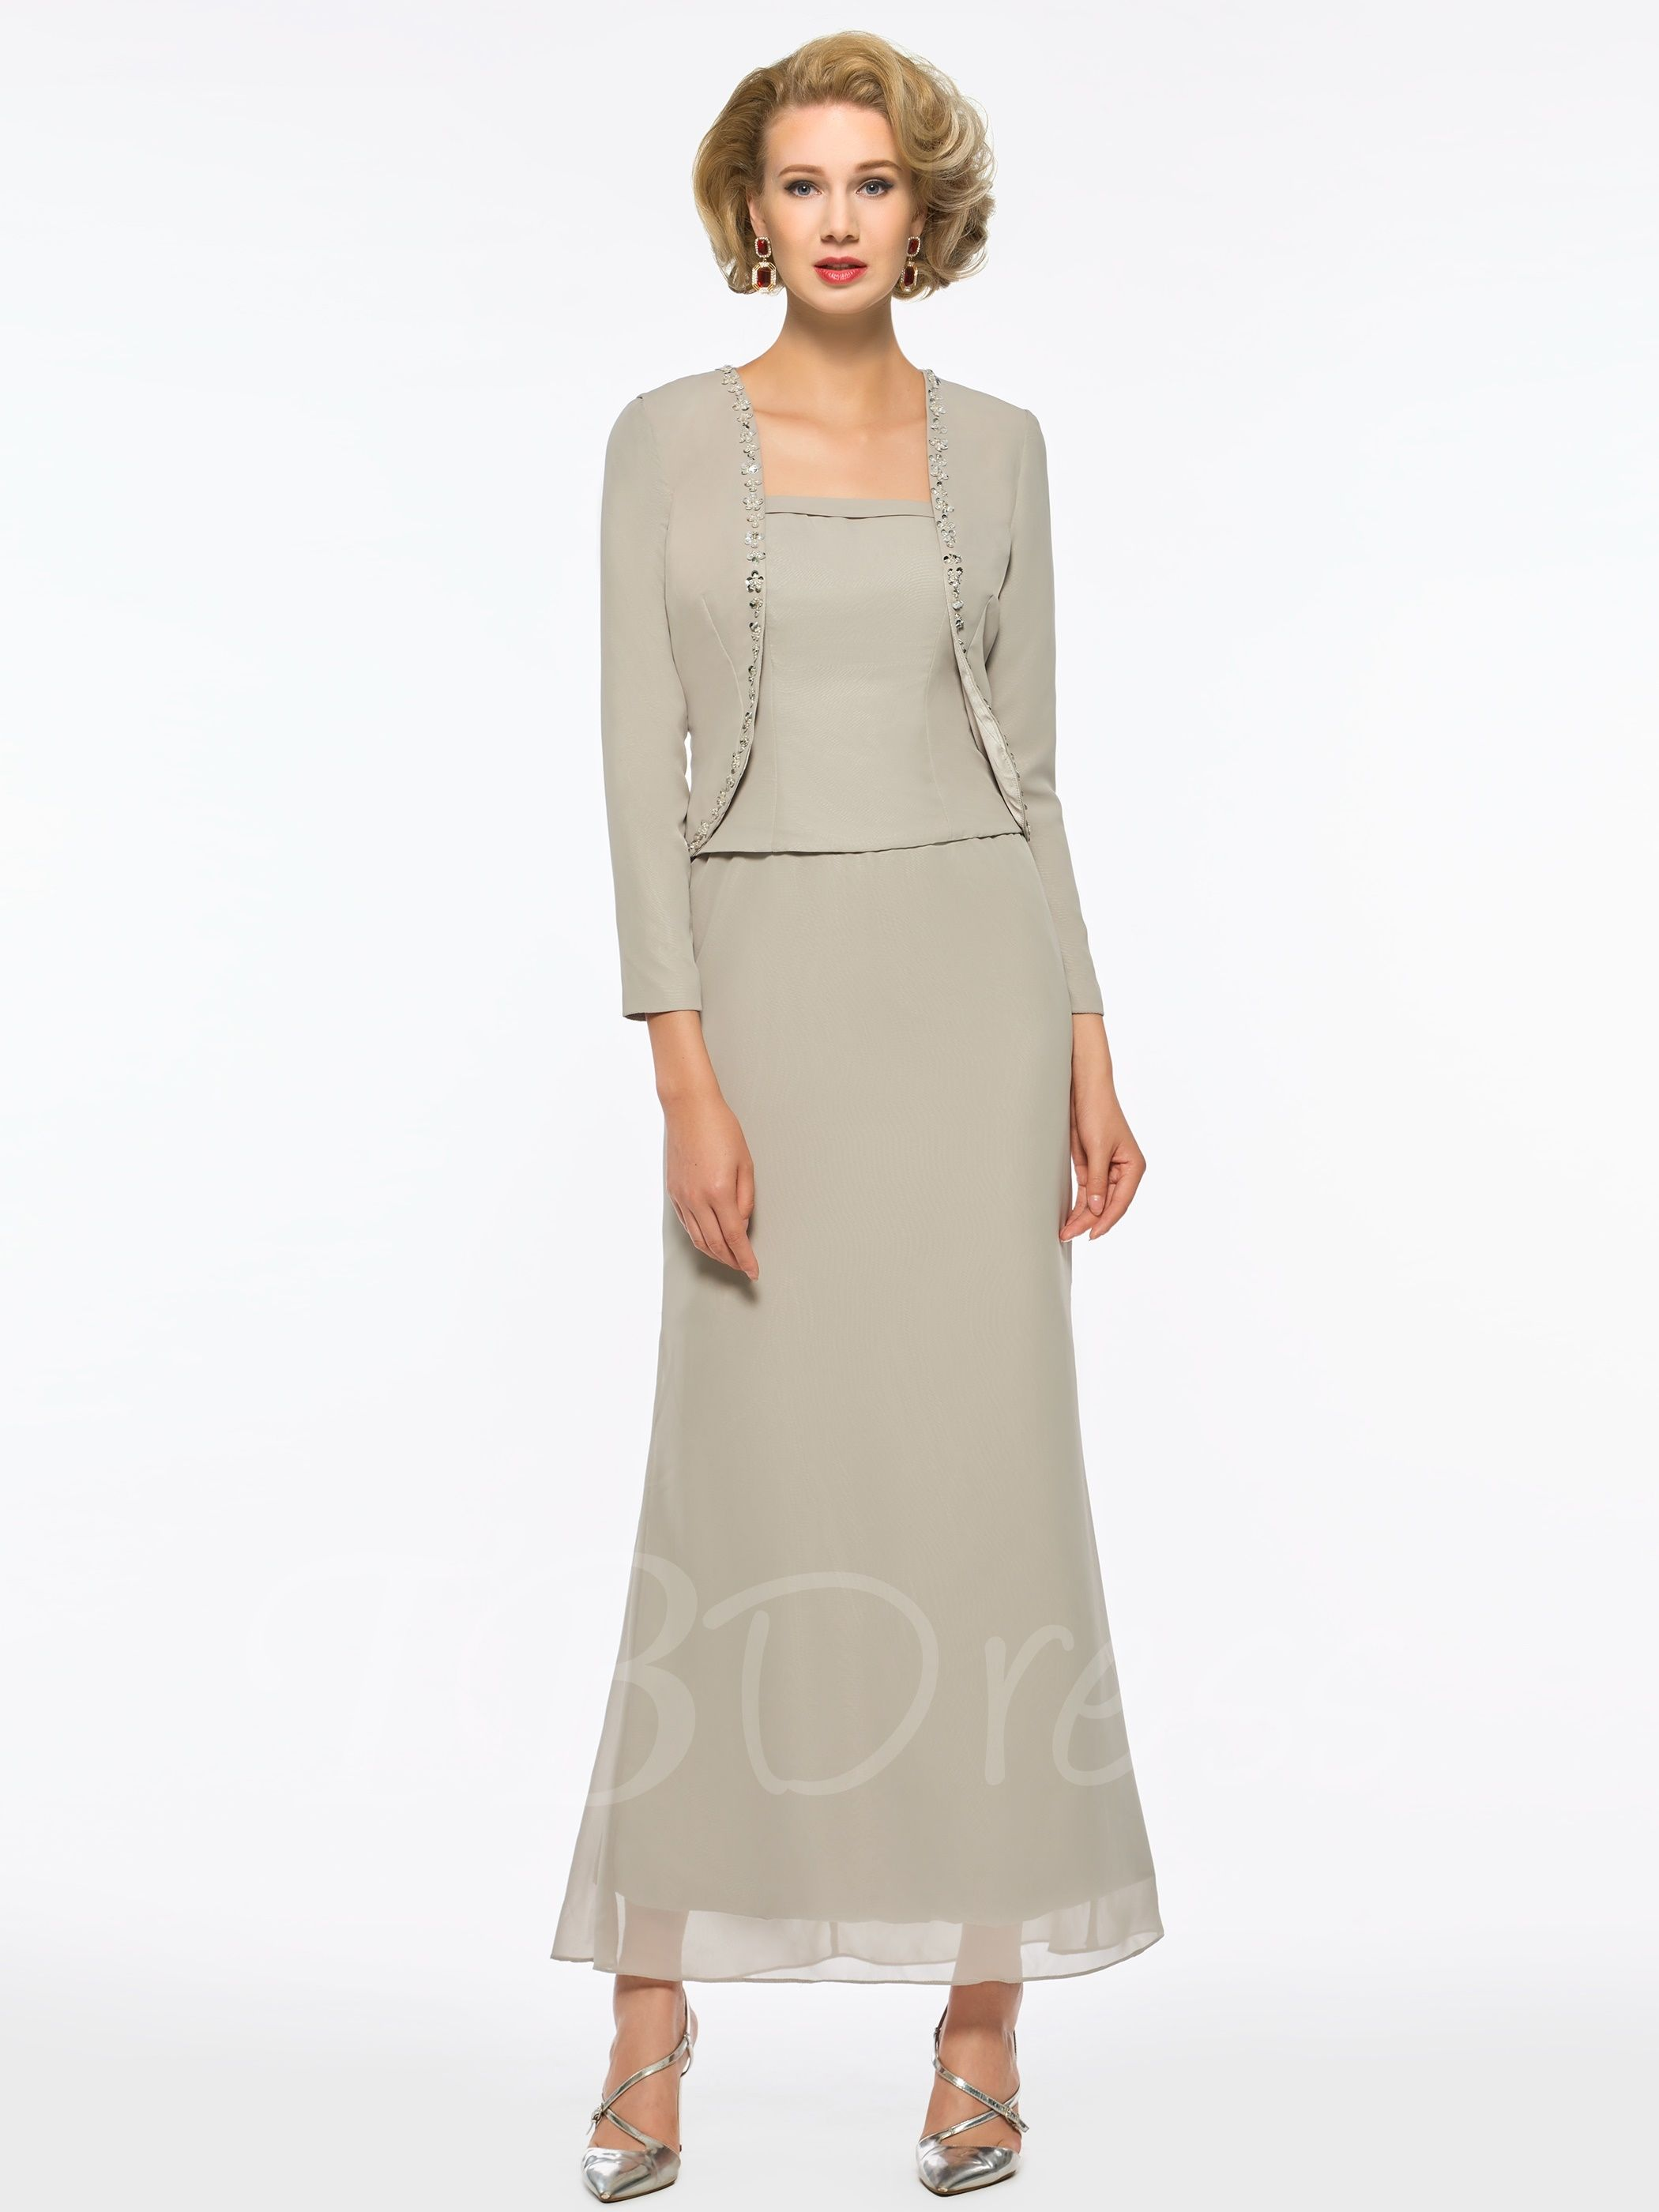 Beaded Sheath AnkleLength Mother of the Bride Dress with